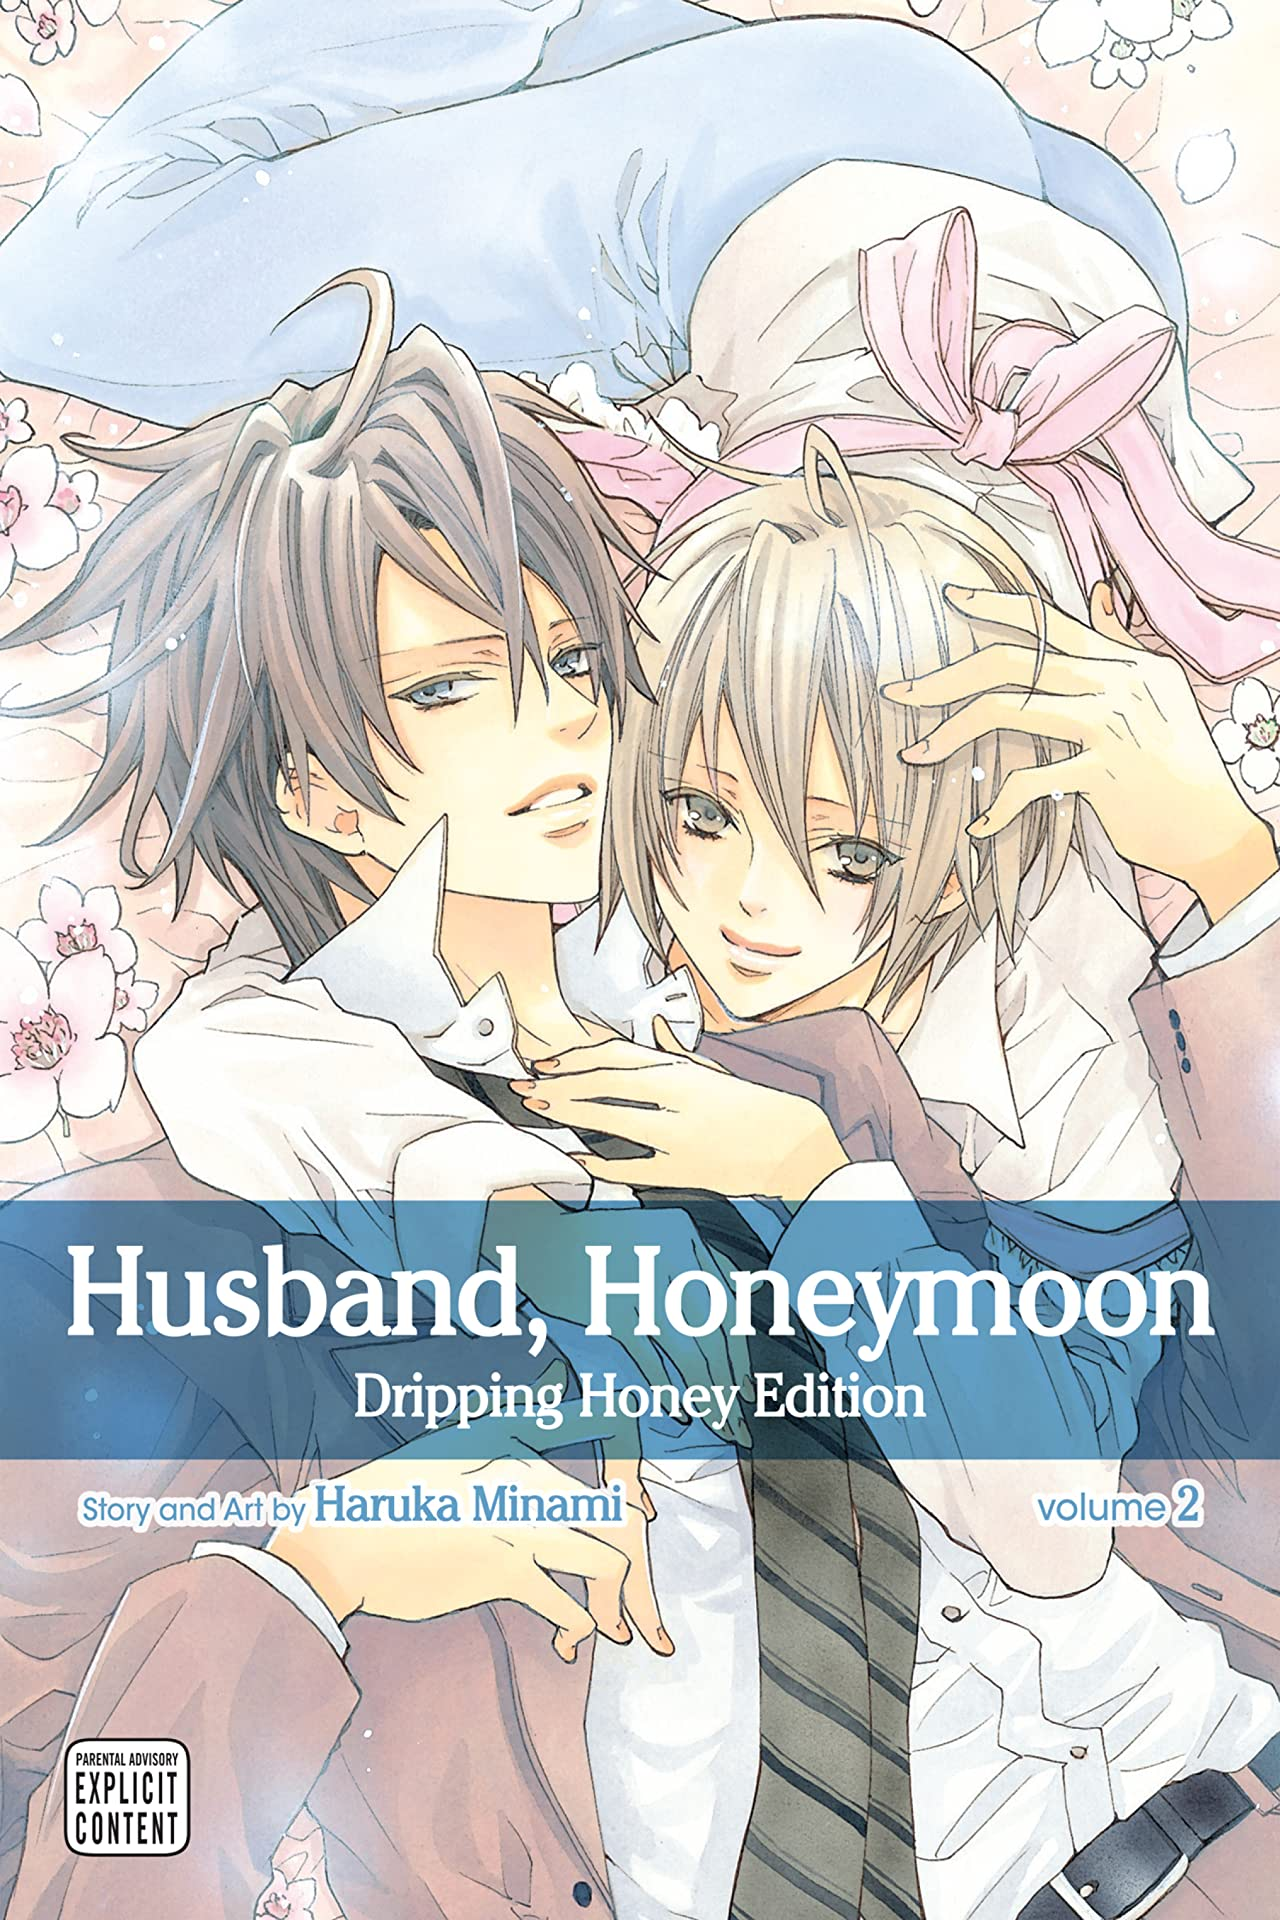 Husband, Honeymoon Vol. 2